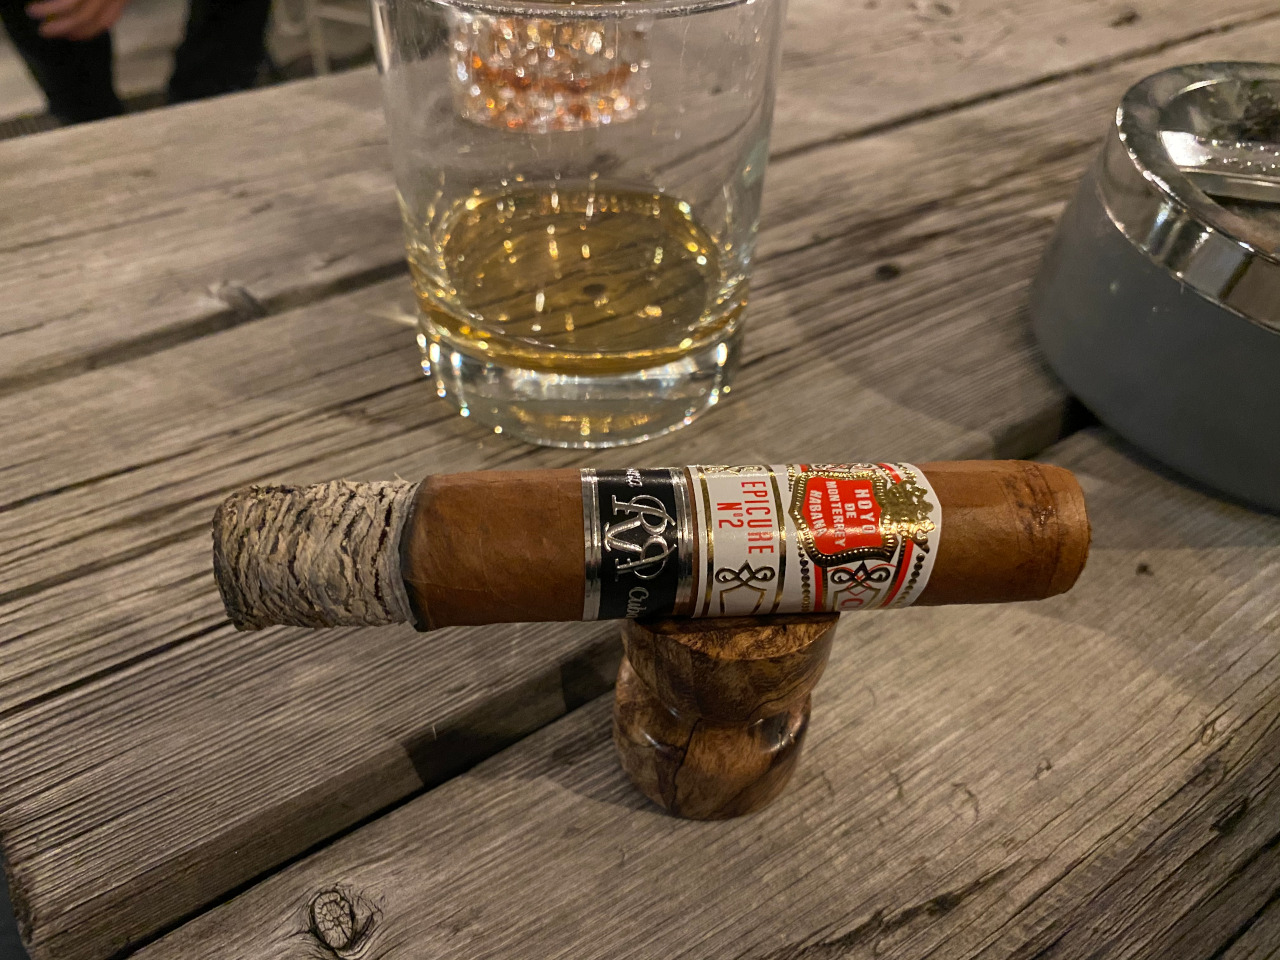 Cigar on stand in front of glass with Whiskey